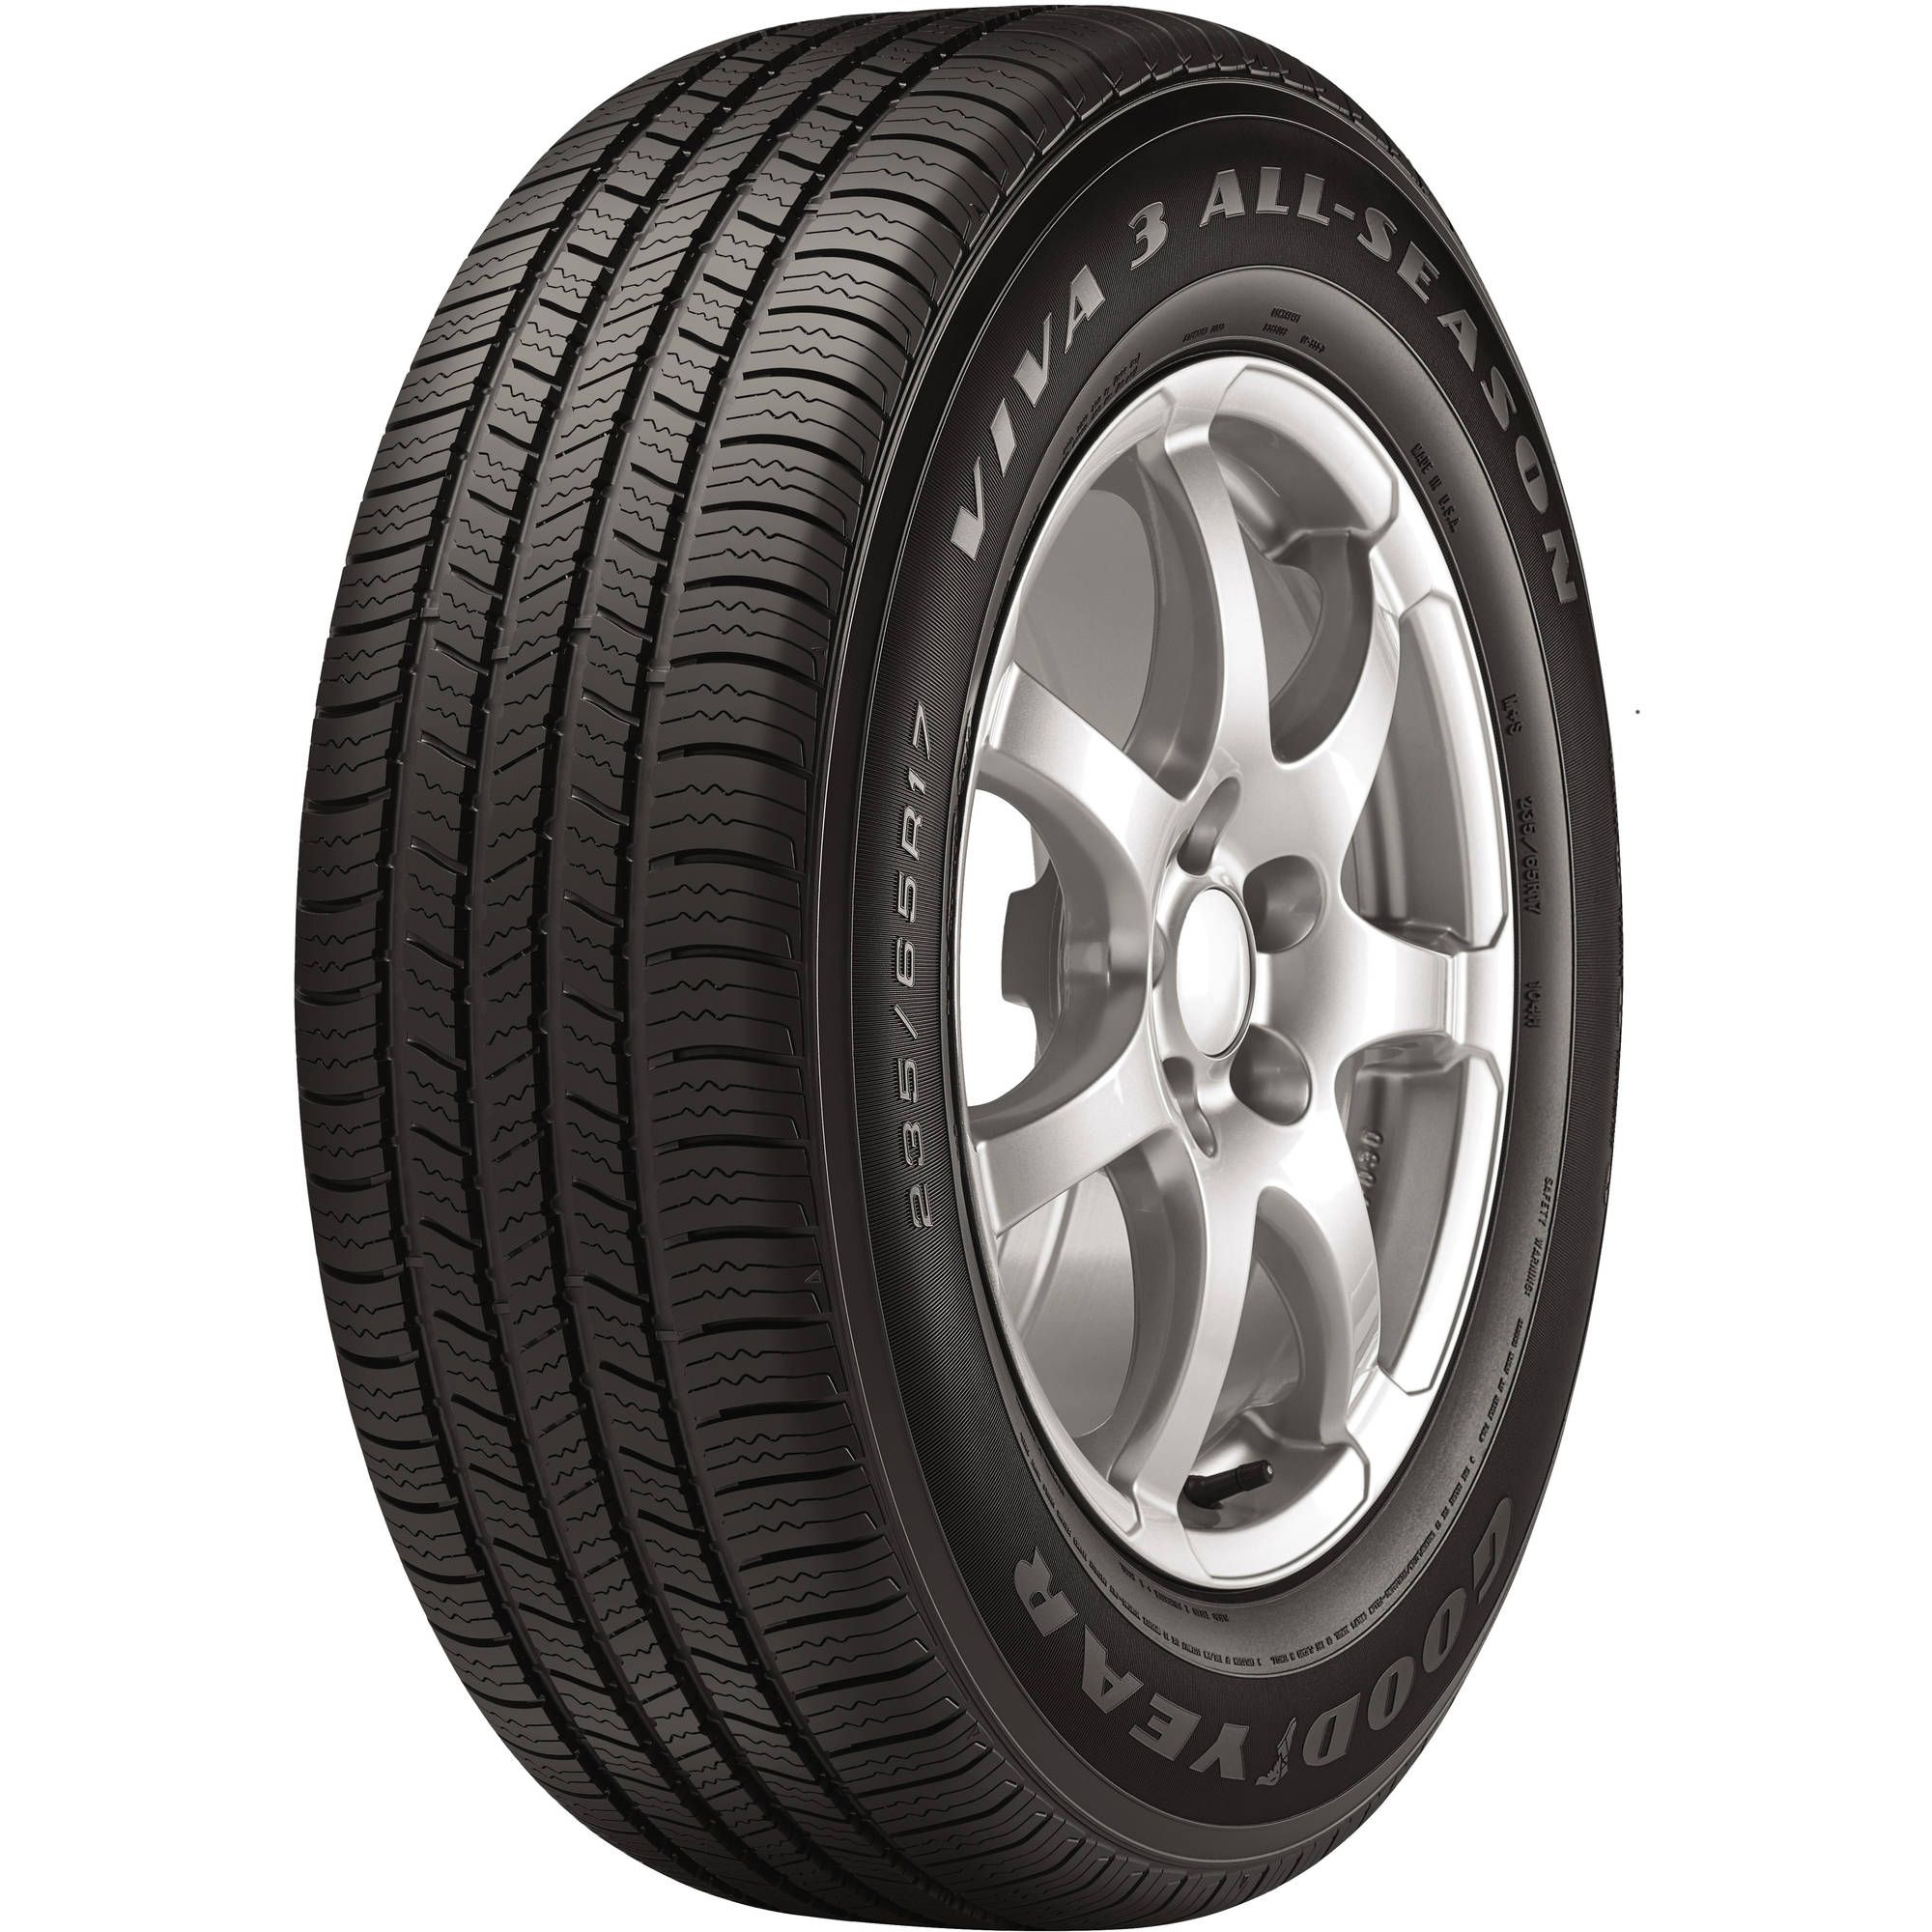 Goodyear Viva 3 All Season Tire 235 55r18 100h Walmart Com